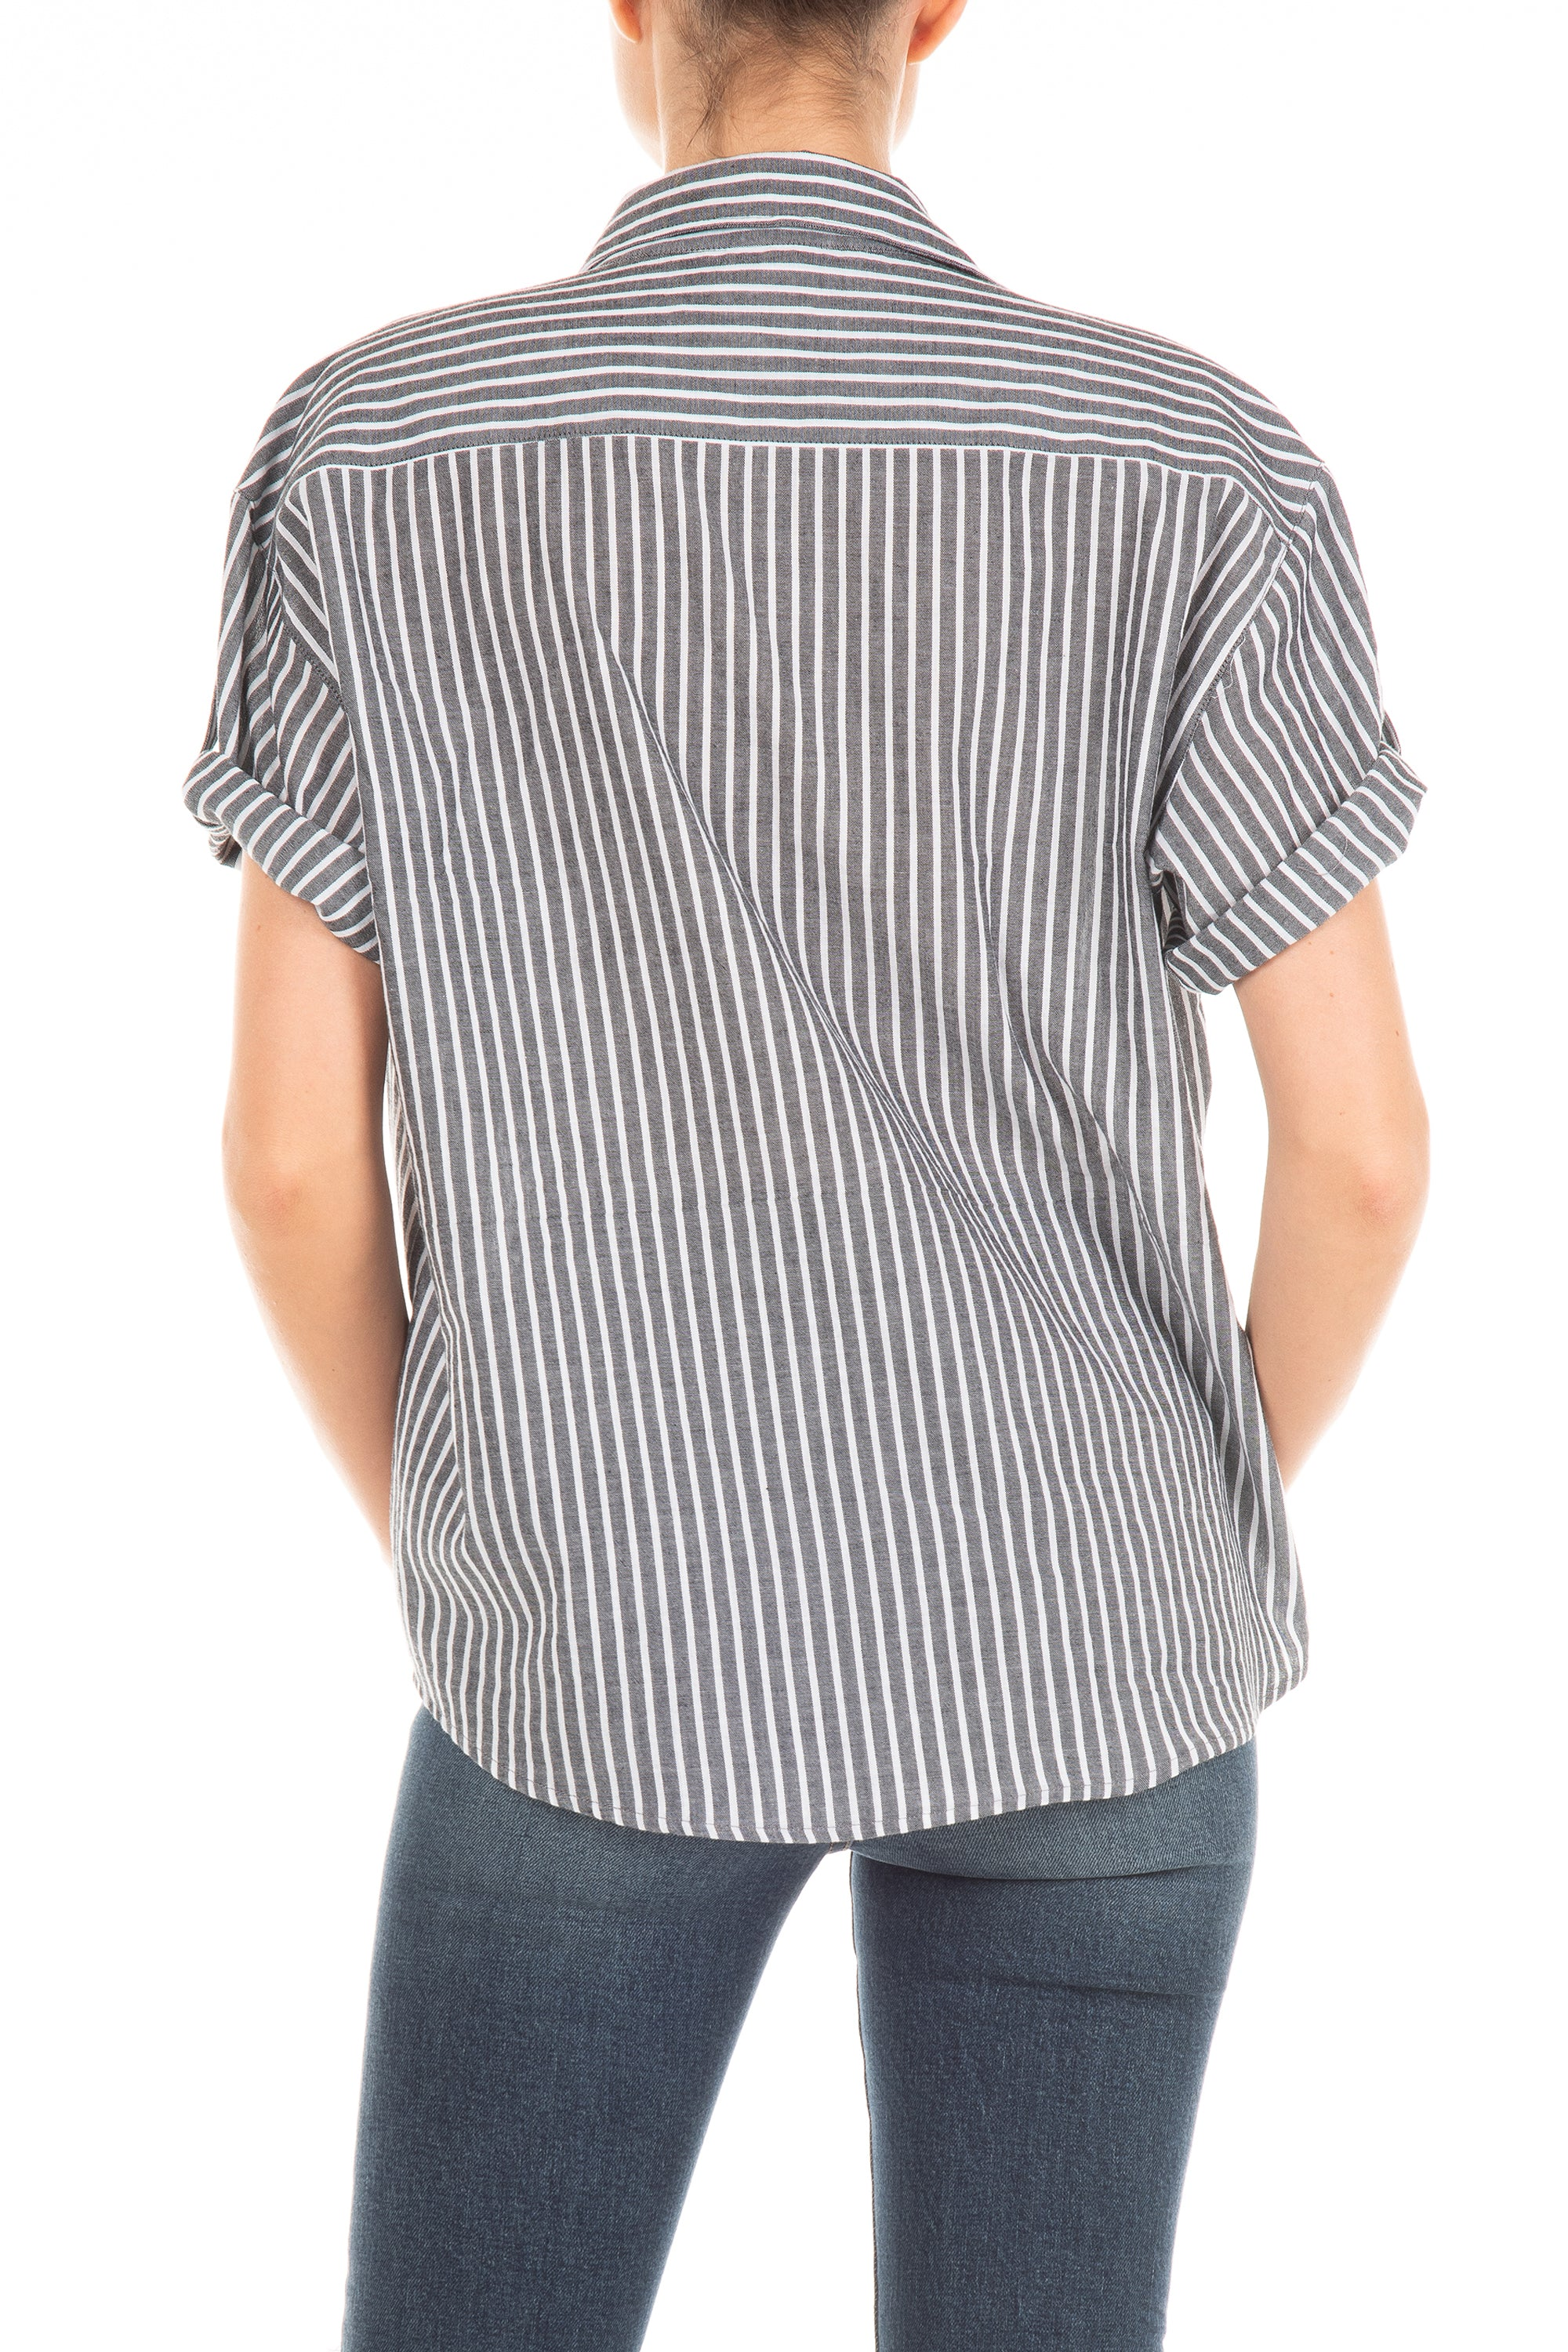 CHILLSTON - KILBY STRIPE